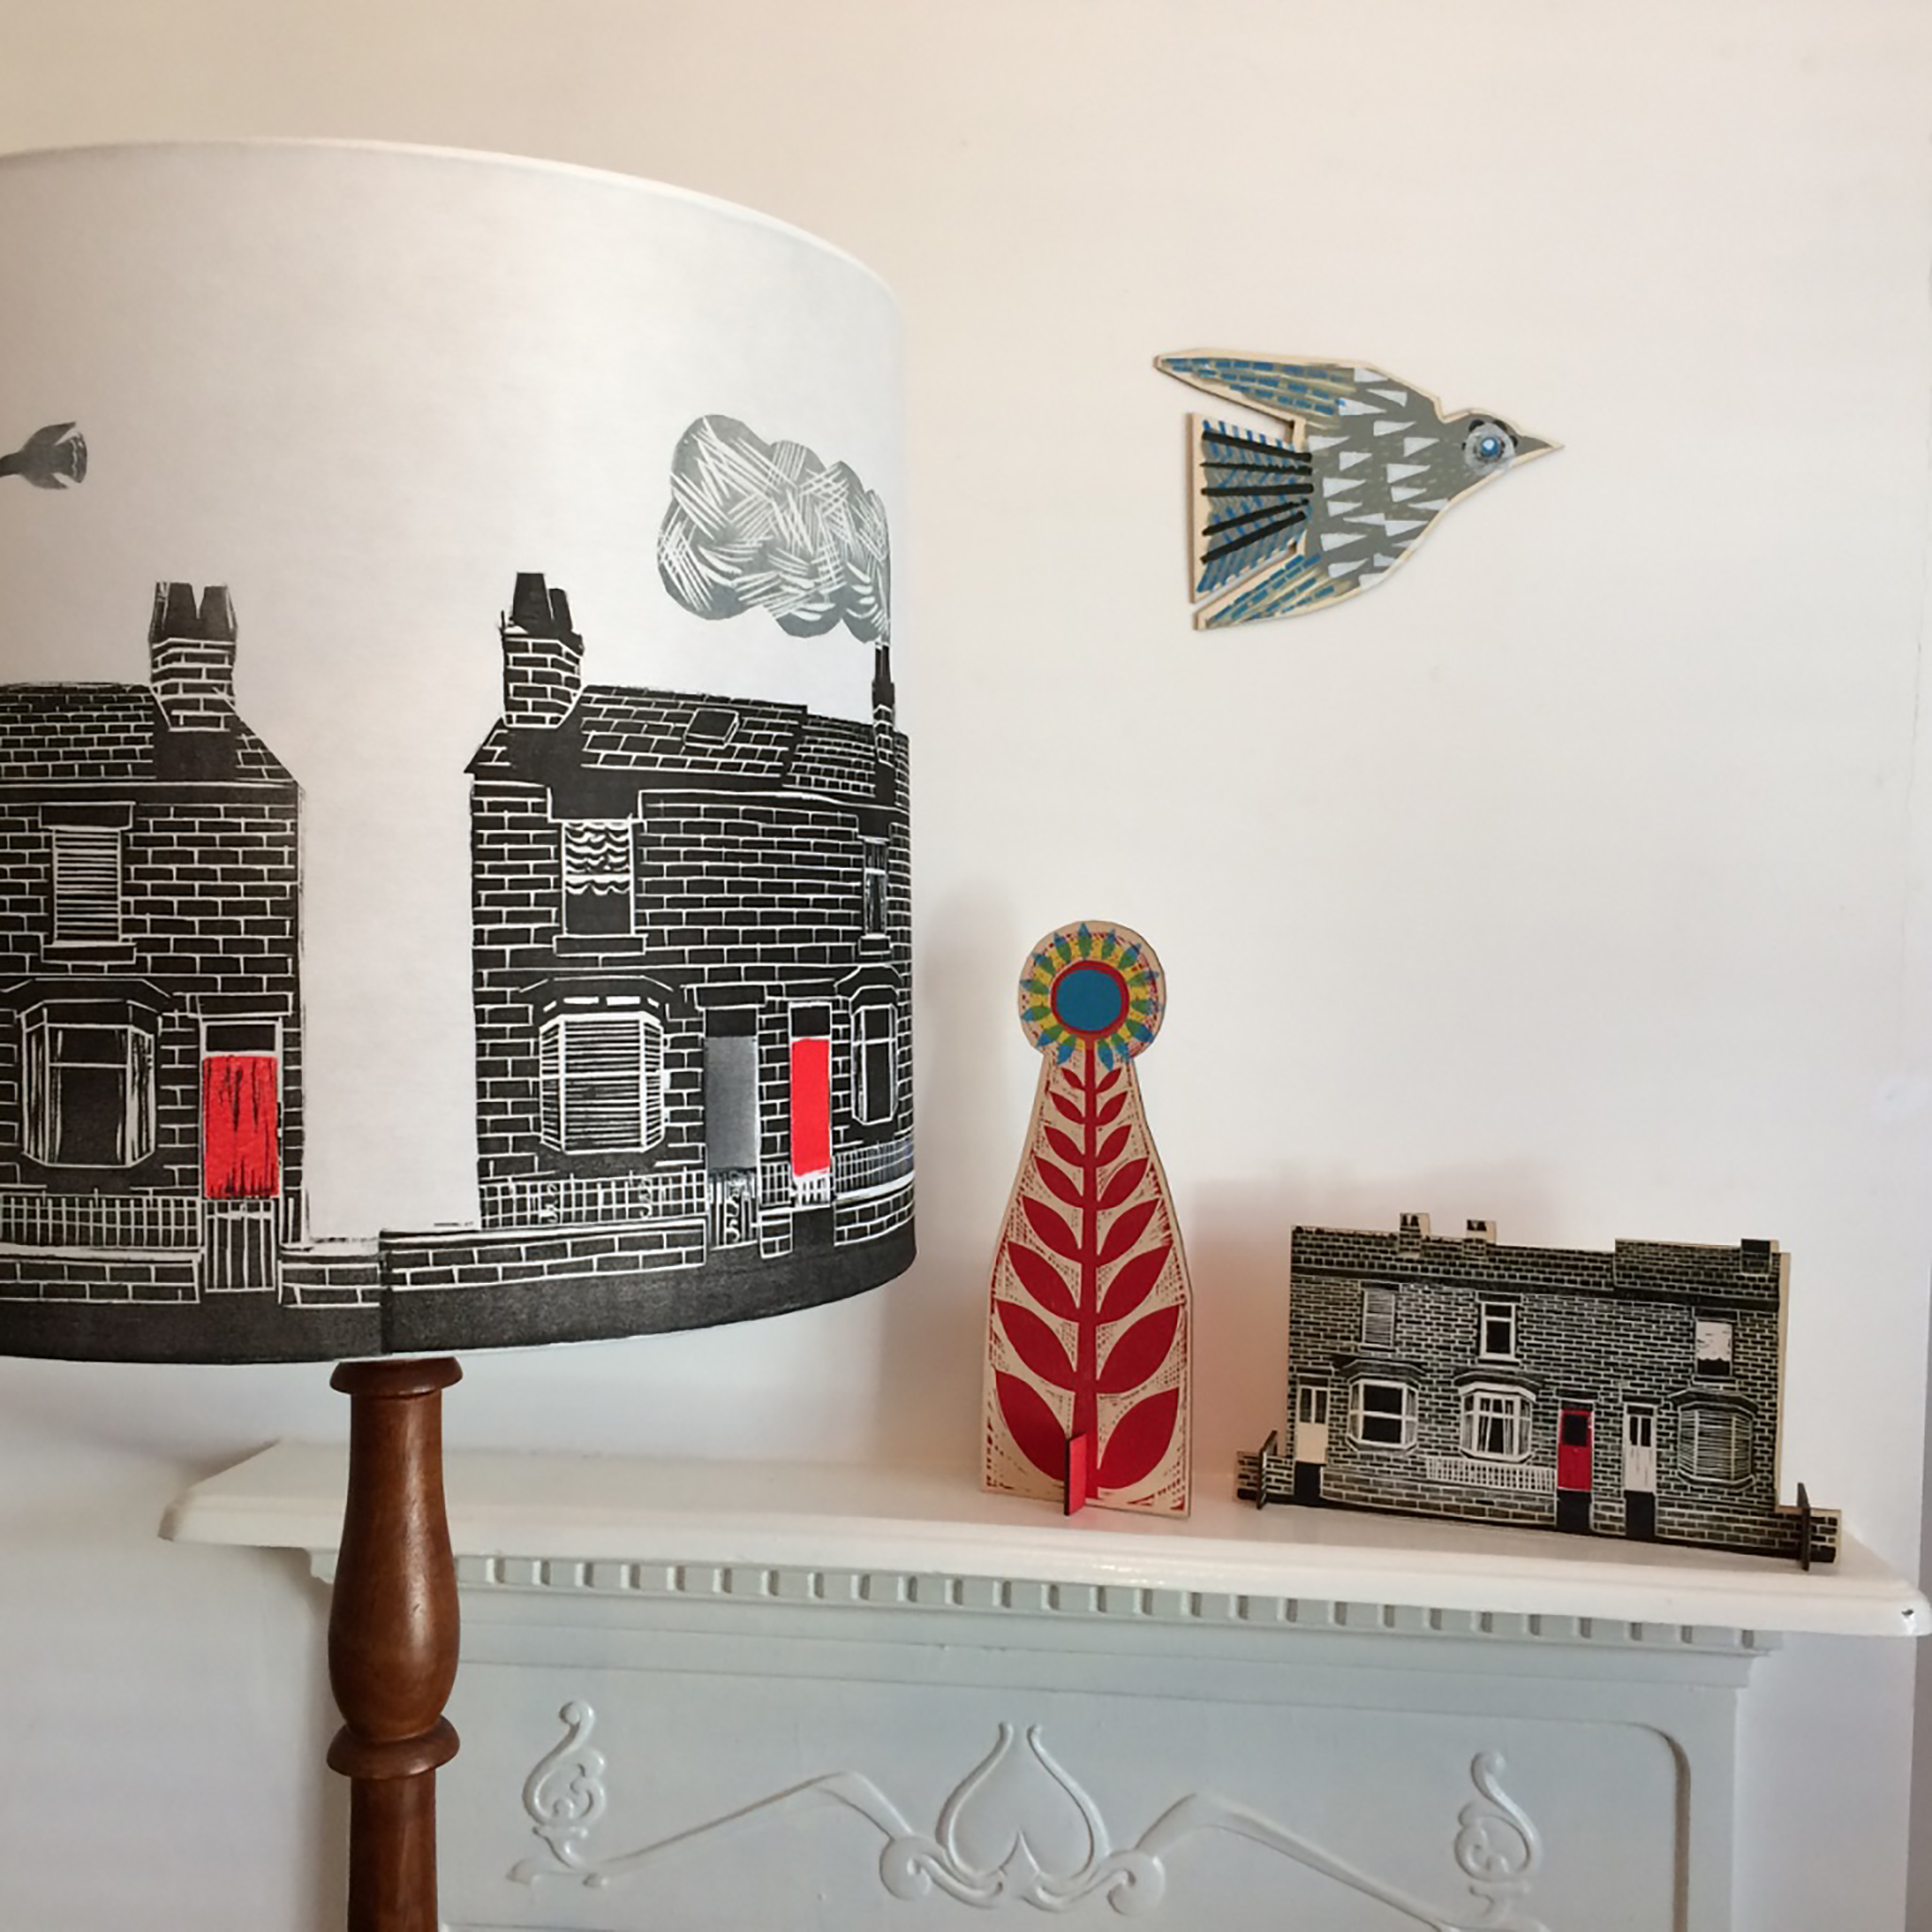 'Lampshade, Terraced house and Flying bird' Linocut ...